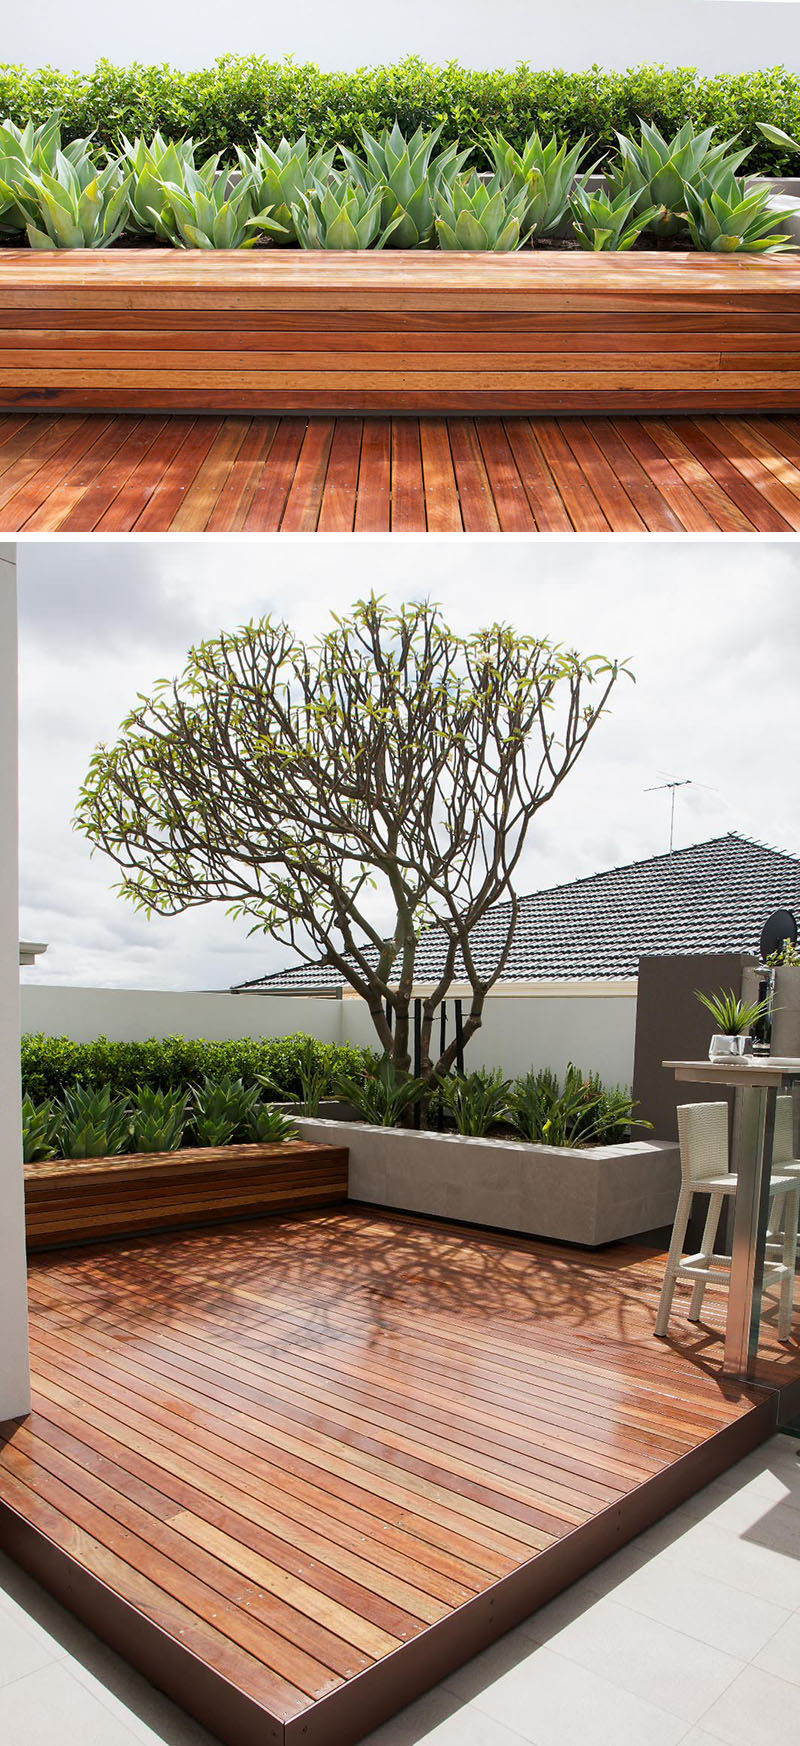 12 Ideas For Including Built-In Wooden Planters In Your Outdoor Space // These wood planters are made from the same wood as the rest of the deck in this backyard and make the space feel warm and inviting.